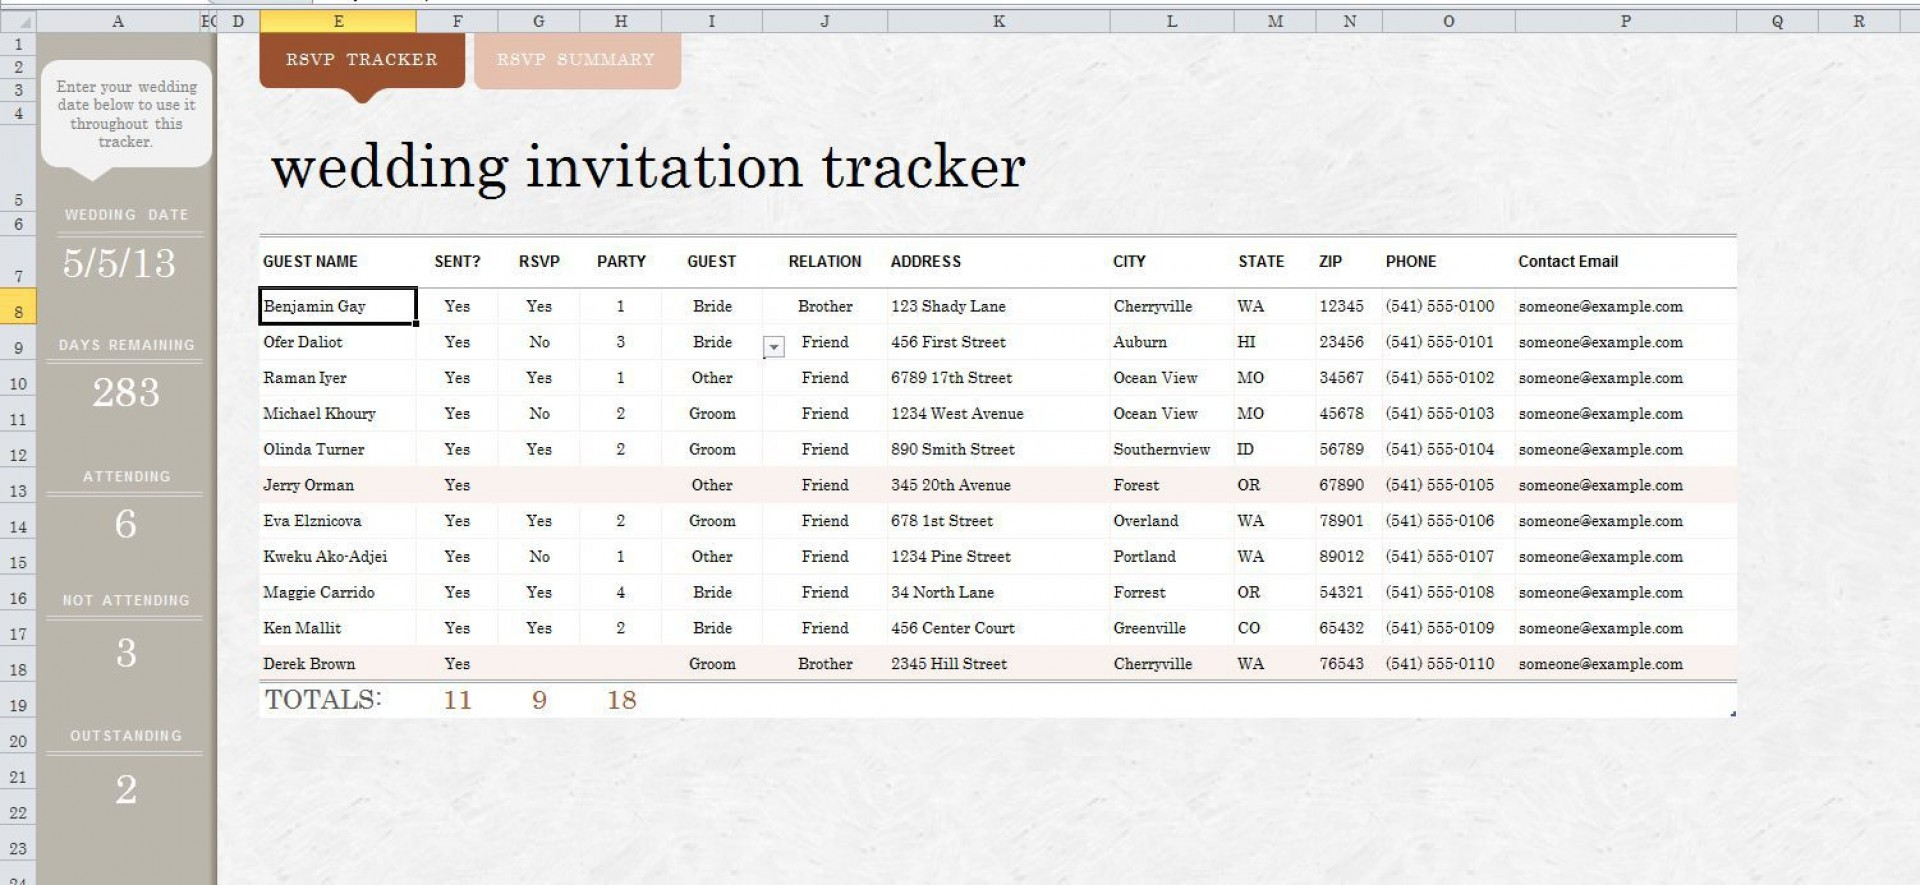 009 Imposing Wedding Guest List Excel Spreadsheet Template High Definition 1920